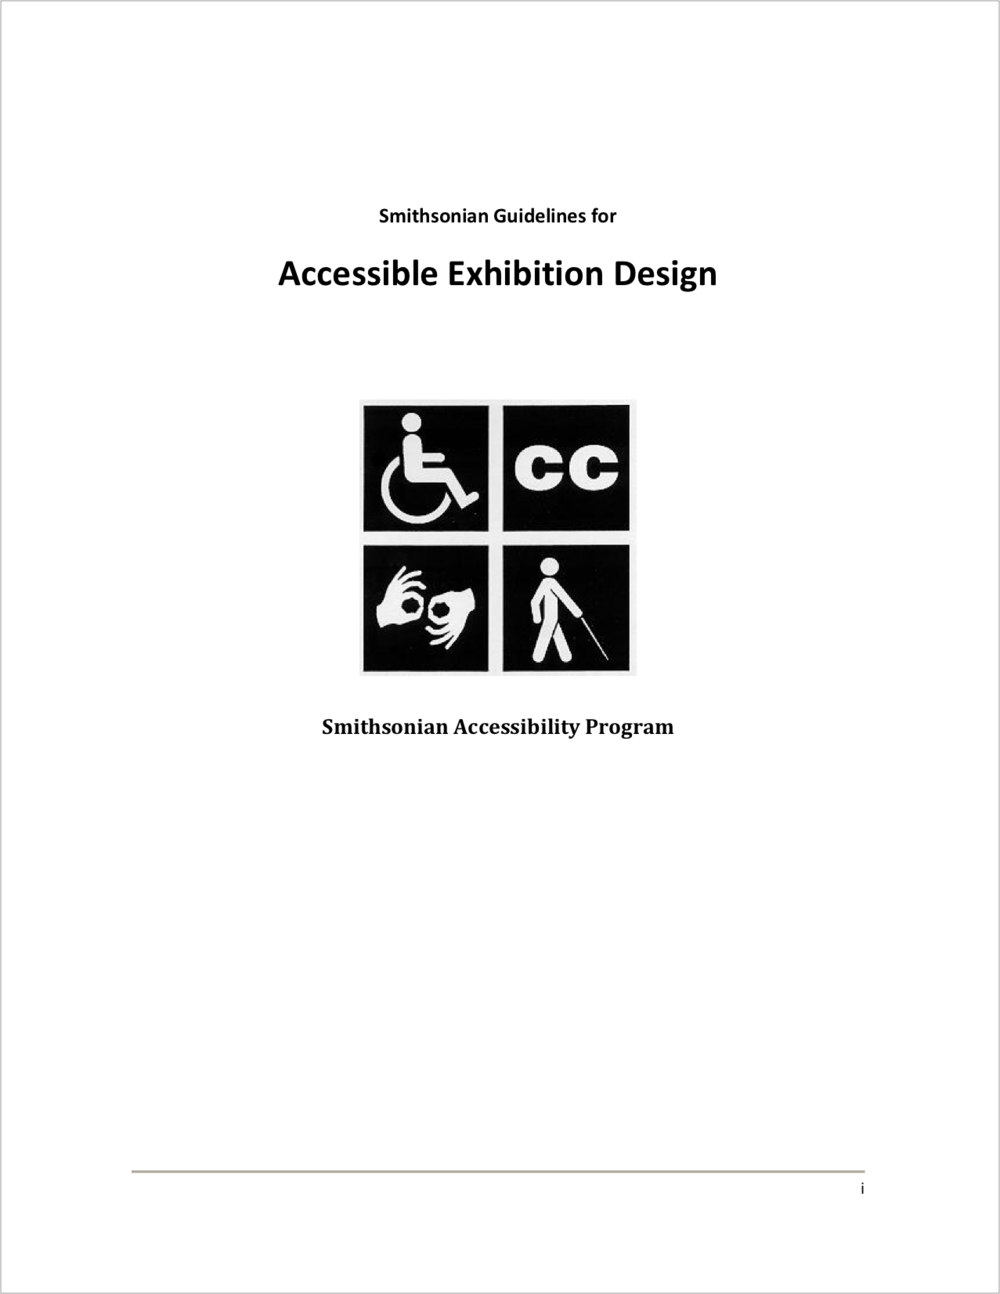 Smithsonian Guidelines for accessible design.png